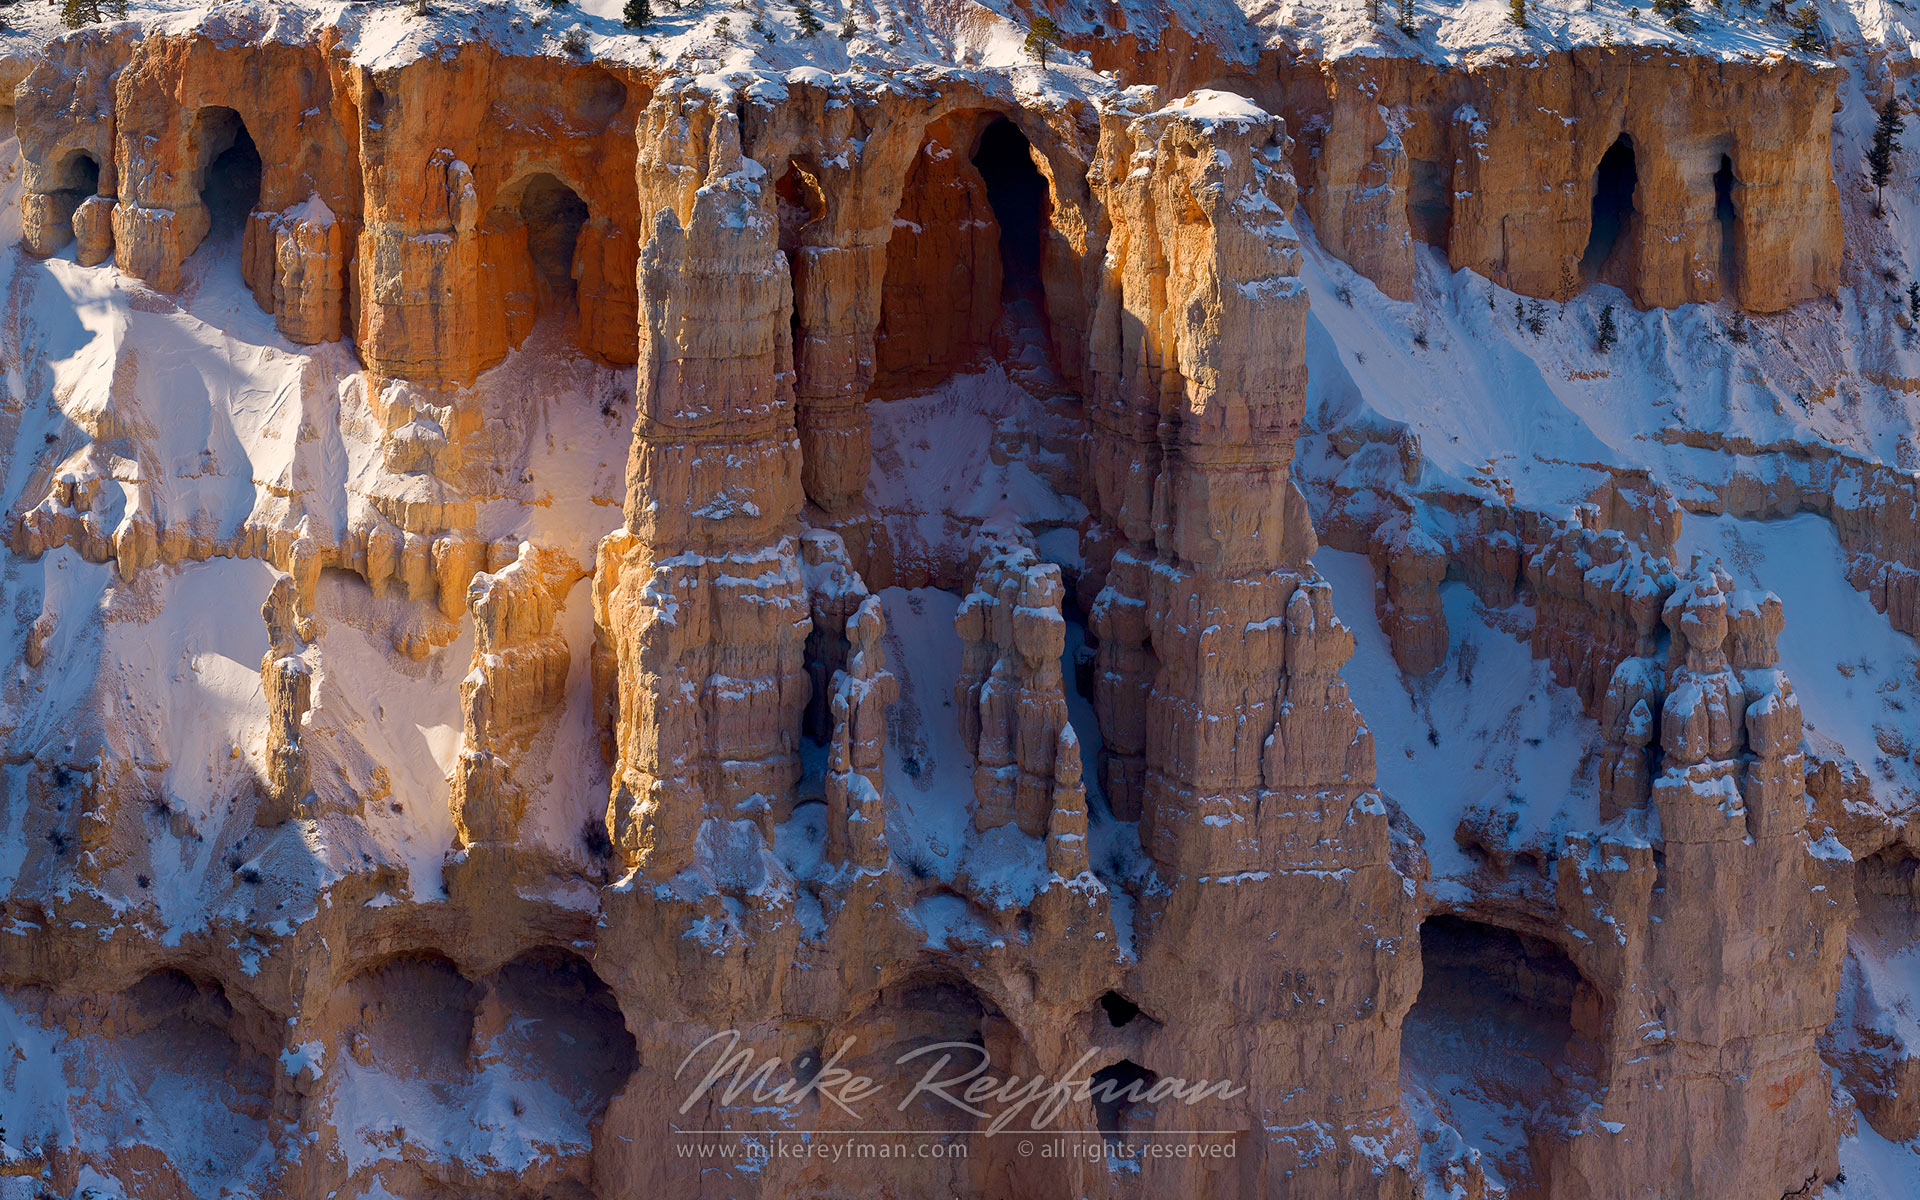 Silent City. Bryce Point. Bryce Canyon National Park, Utah, USA. - Bryce-Canyon-National-Park-Utah-USA - Mike Reyfman Photography